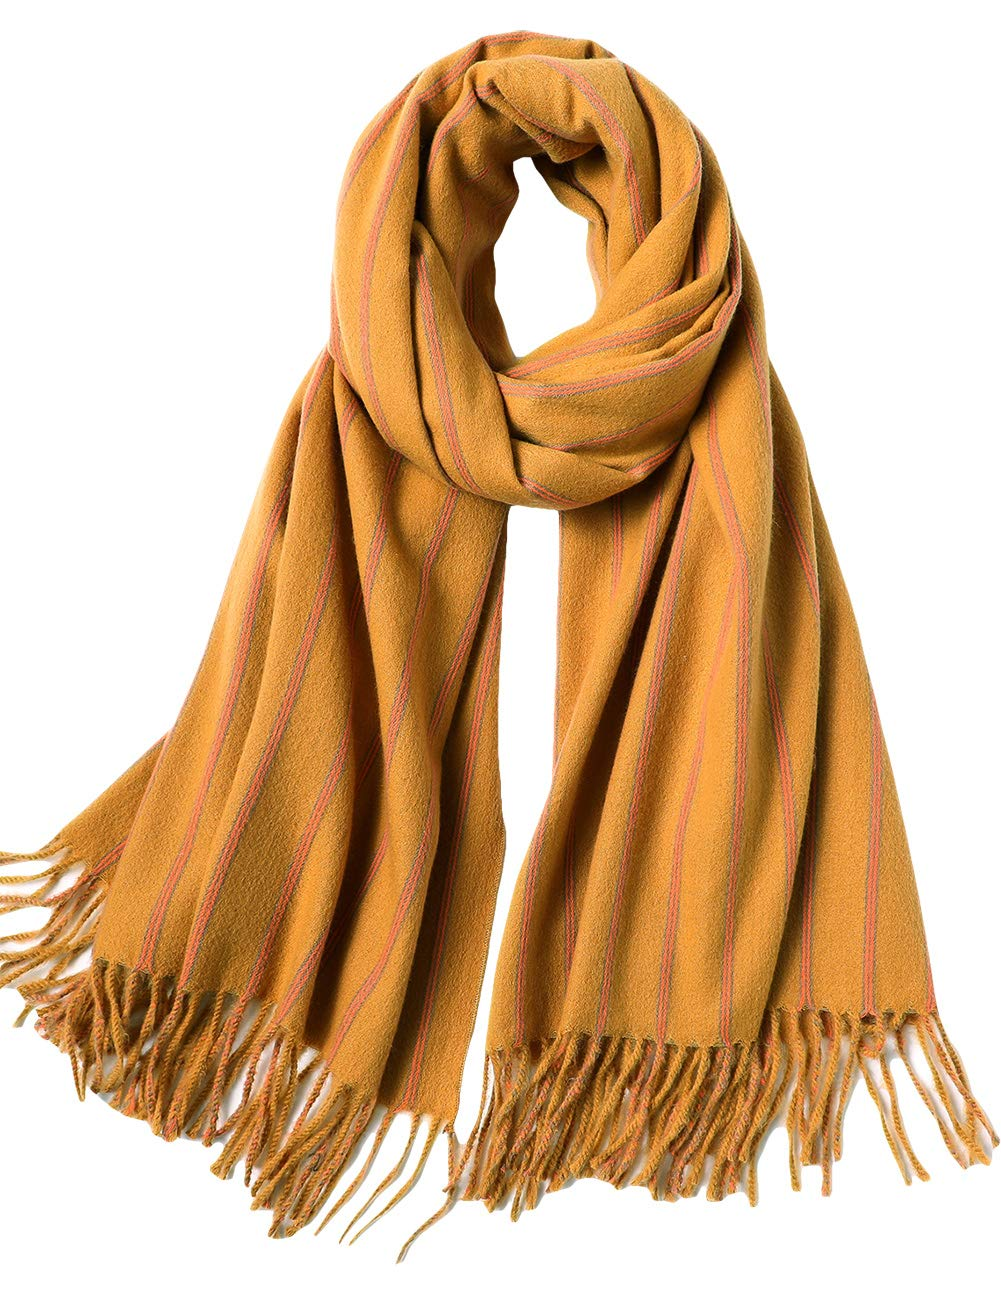 MaaMgic Striped Soft Wraps Pashminas Cashmere Scarfs for Women with, Ginger